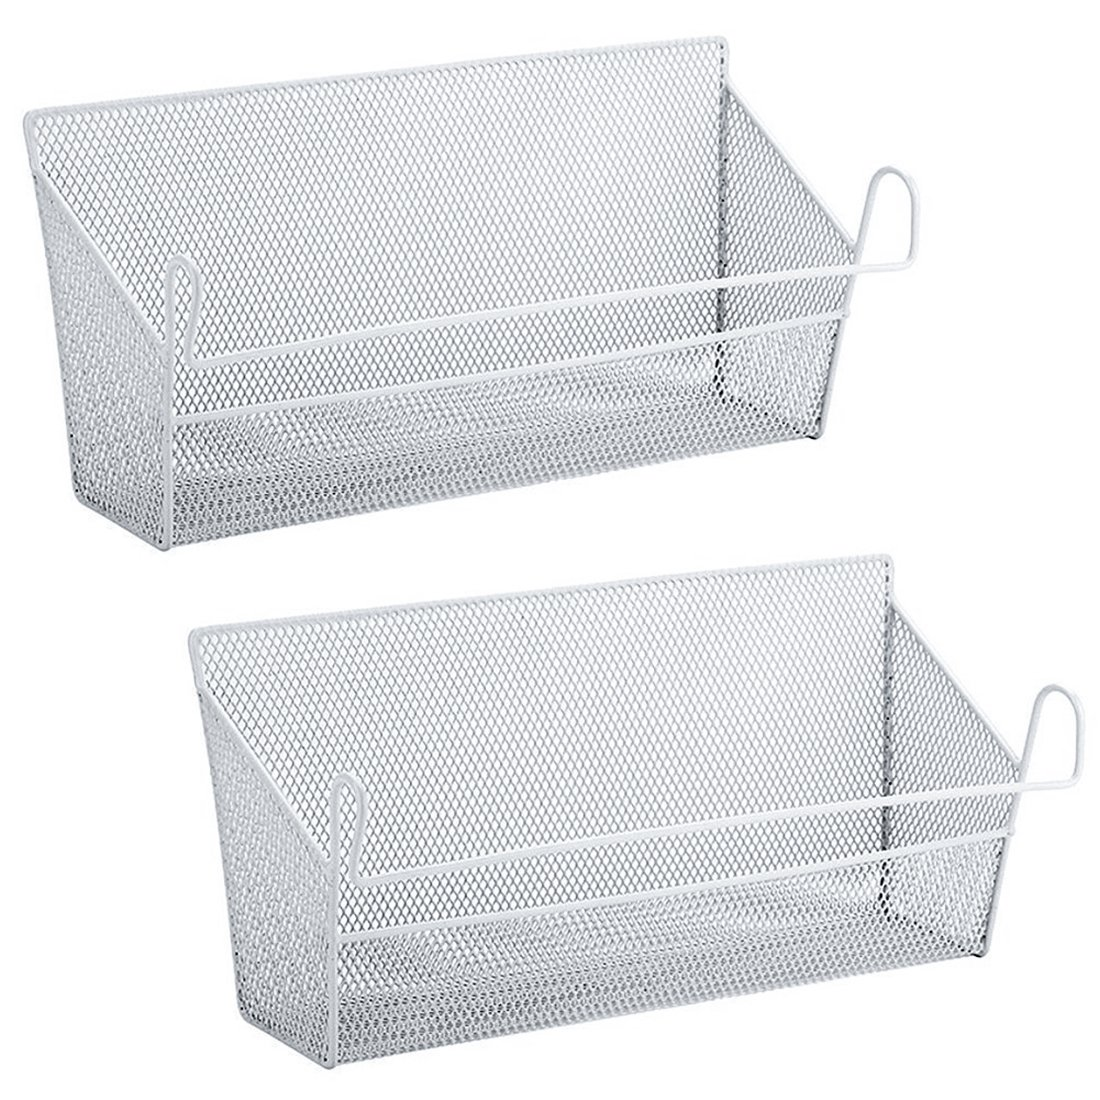 YIFAN 2Pack Dormitory Bedside Storage Baskets, Mesh Origanizer Caddy for Books Phones Drinks Office Home Table Hanging Organizer Desktop Corner Shelves (White) by YIFAN